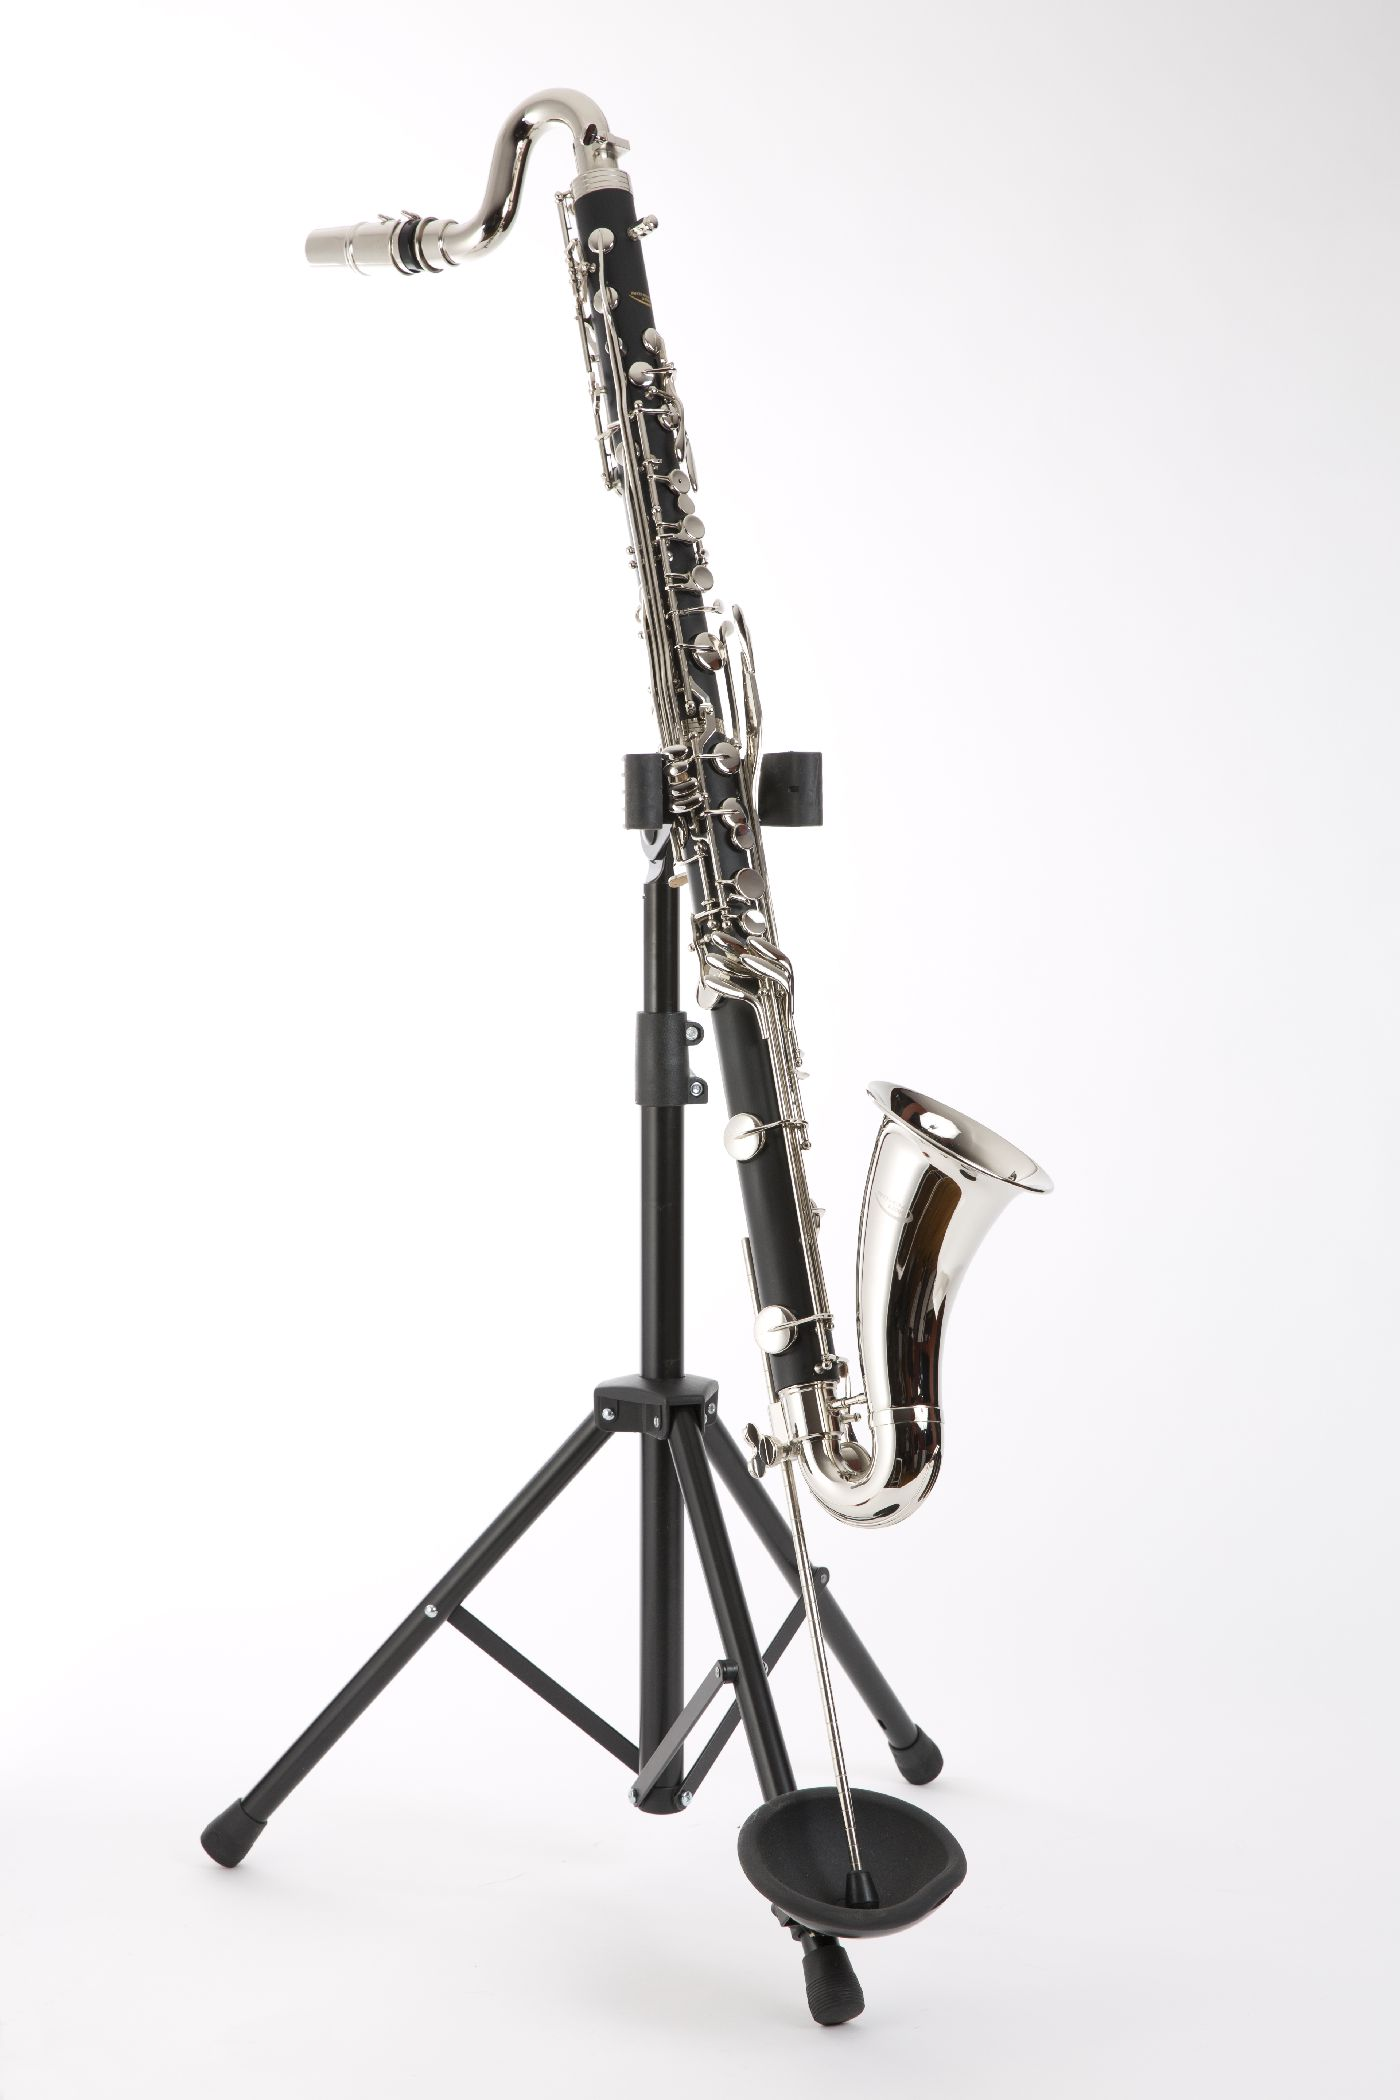 ANTHEM A-5000 BASS CLARINET